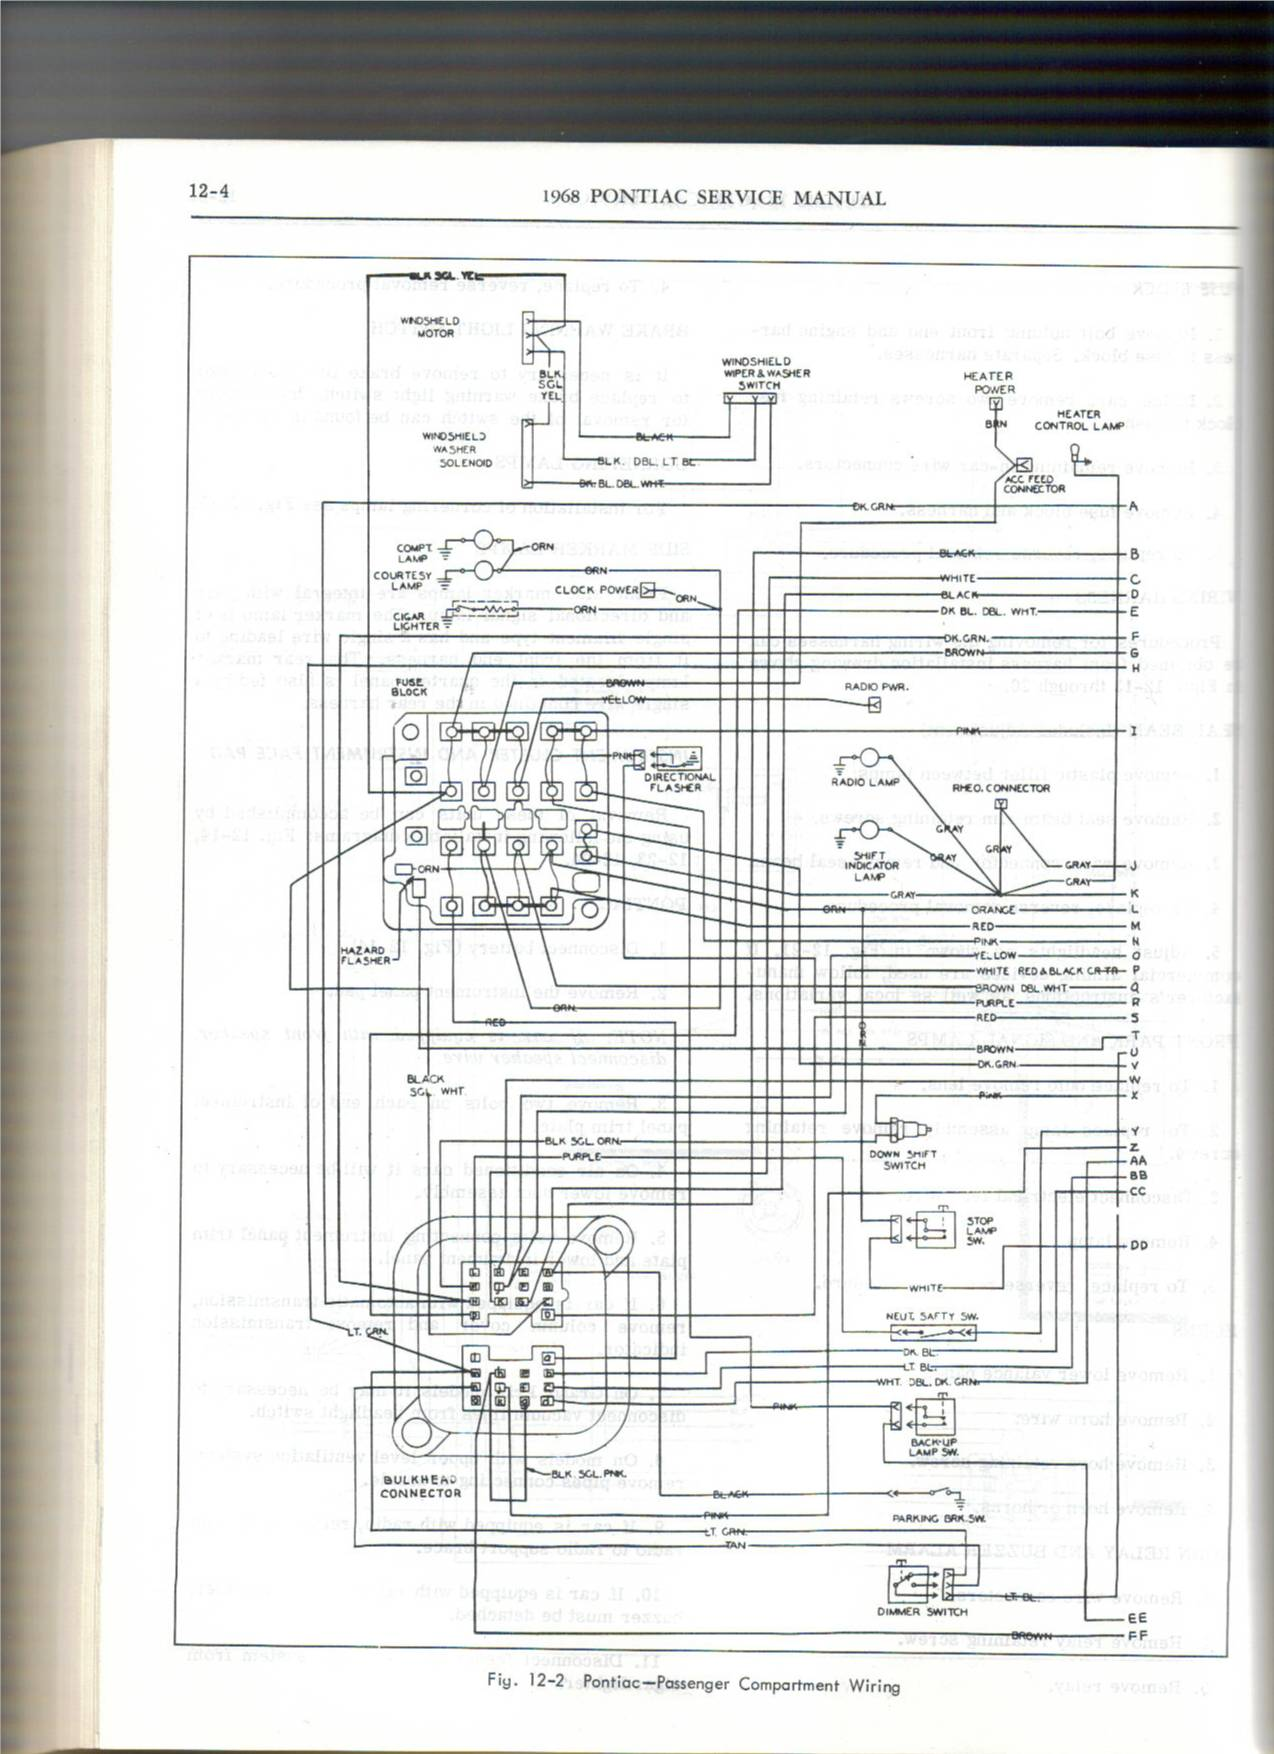 gto wiring diagram scans page 2 pontiac gto forum click image for larger version 68 passenger jpg views 12488 size